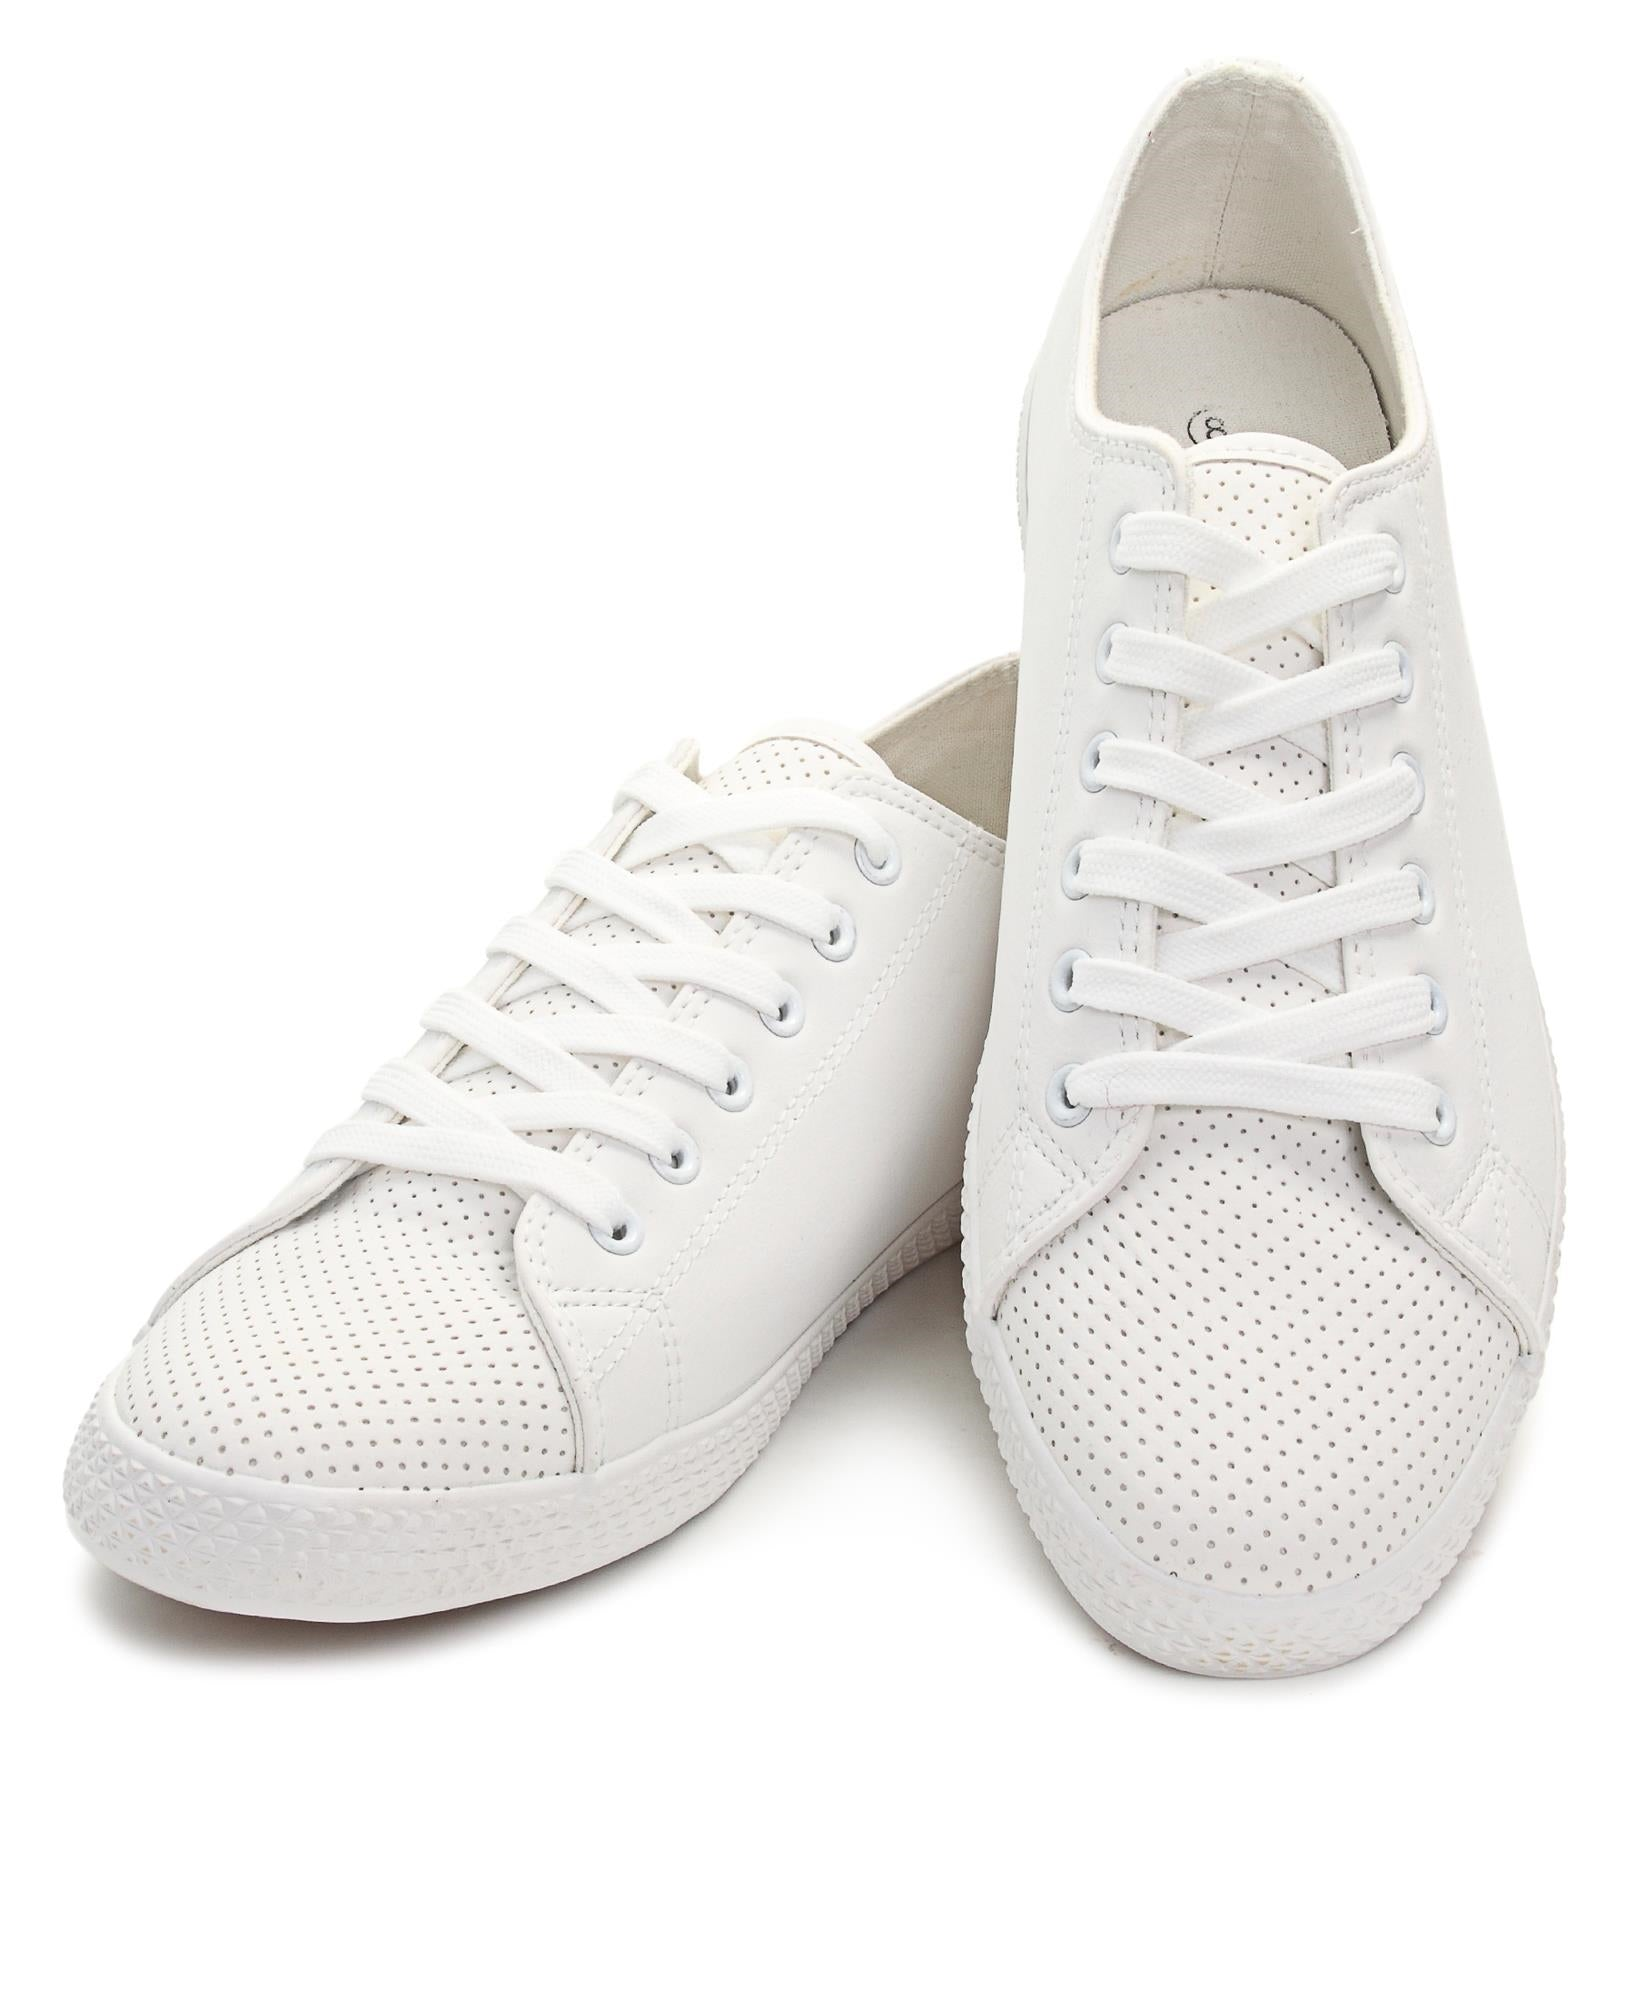 Men's Light Basic Sneakers - White